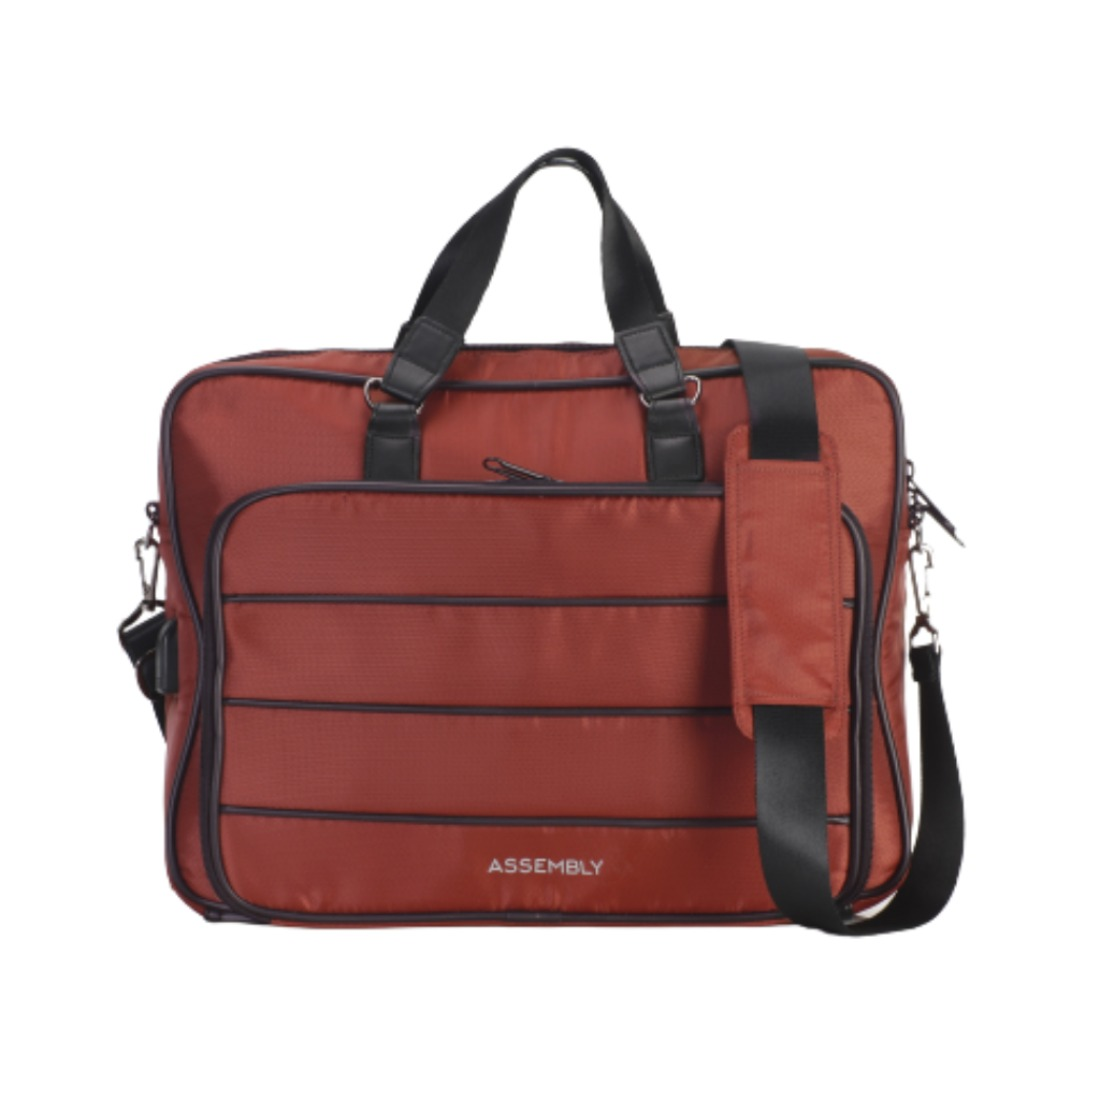 THE ASSEMBLY Laptop Messenger Bag with USB Charging Port